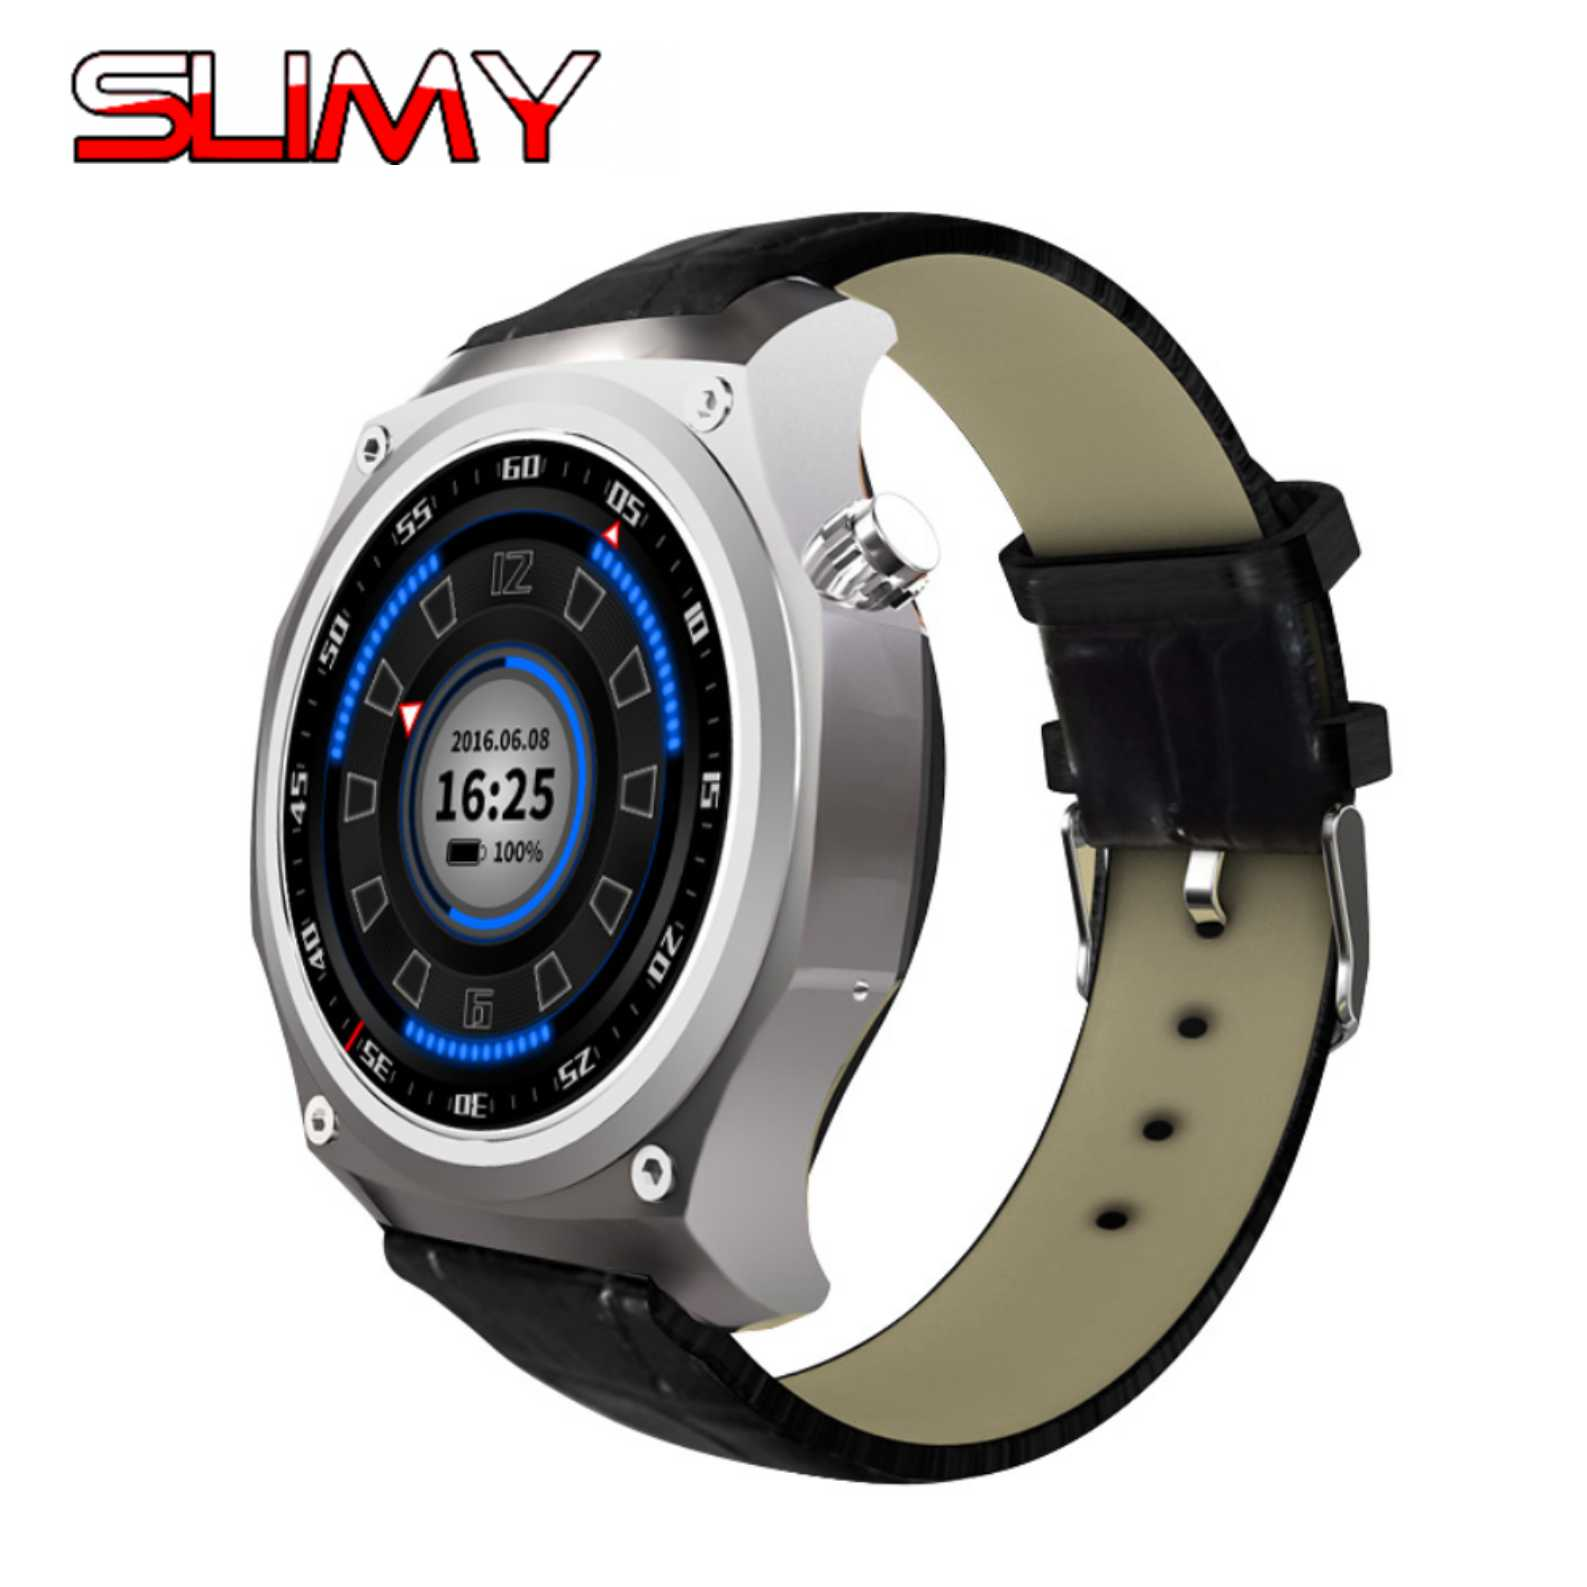 Slimy 3G Wifi Smart Watch 512MB+4GB Android 5.1 Heart Rate Smartwatch with GPS Wristwatch For Android IOS Phone PK KW88 KW99 smartch h1 smart watch ip68 waterproof 1 39inch 400 400 gps wifi 3g heart rate 4gb 512mb smartwatch for android ios camera 500